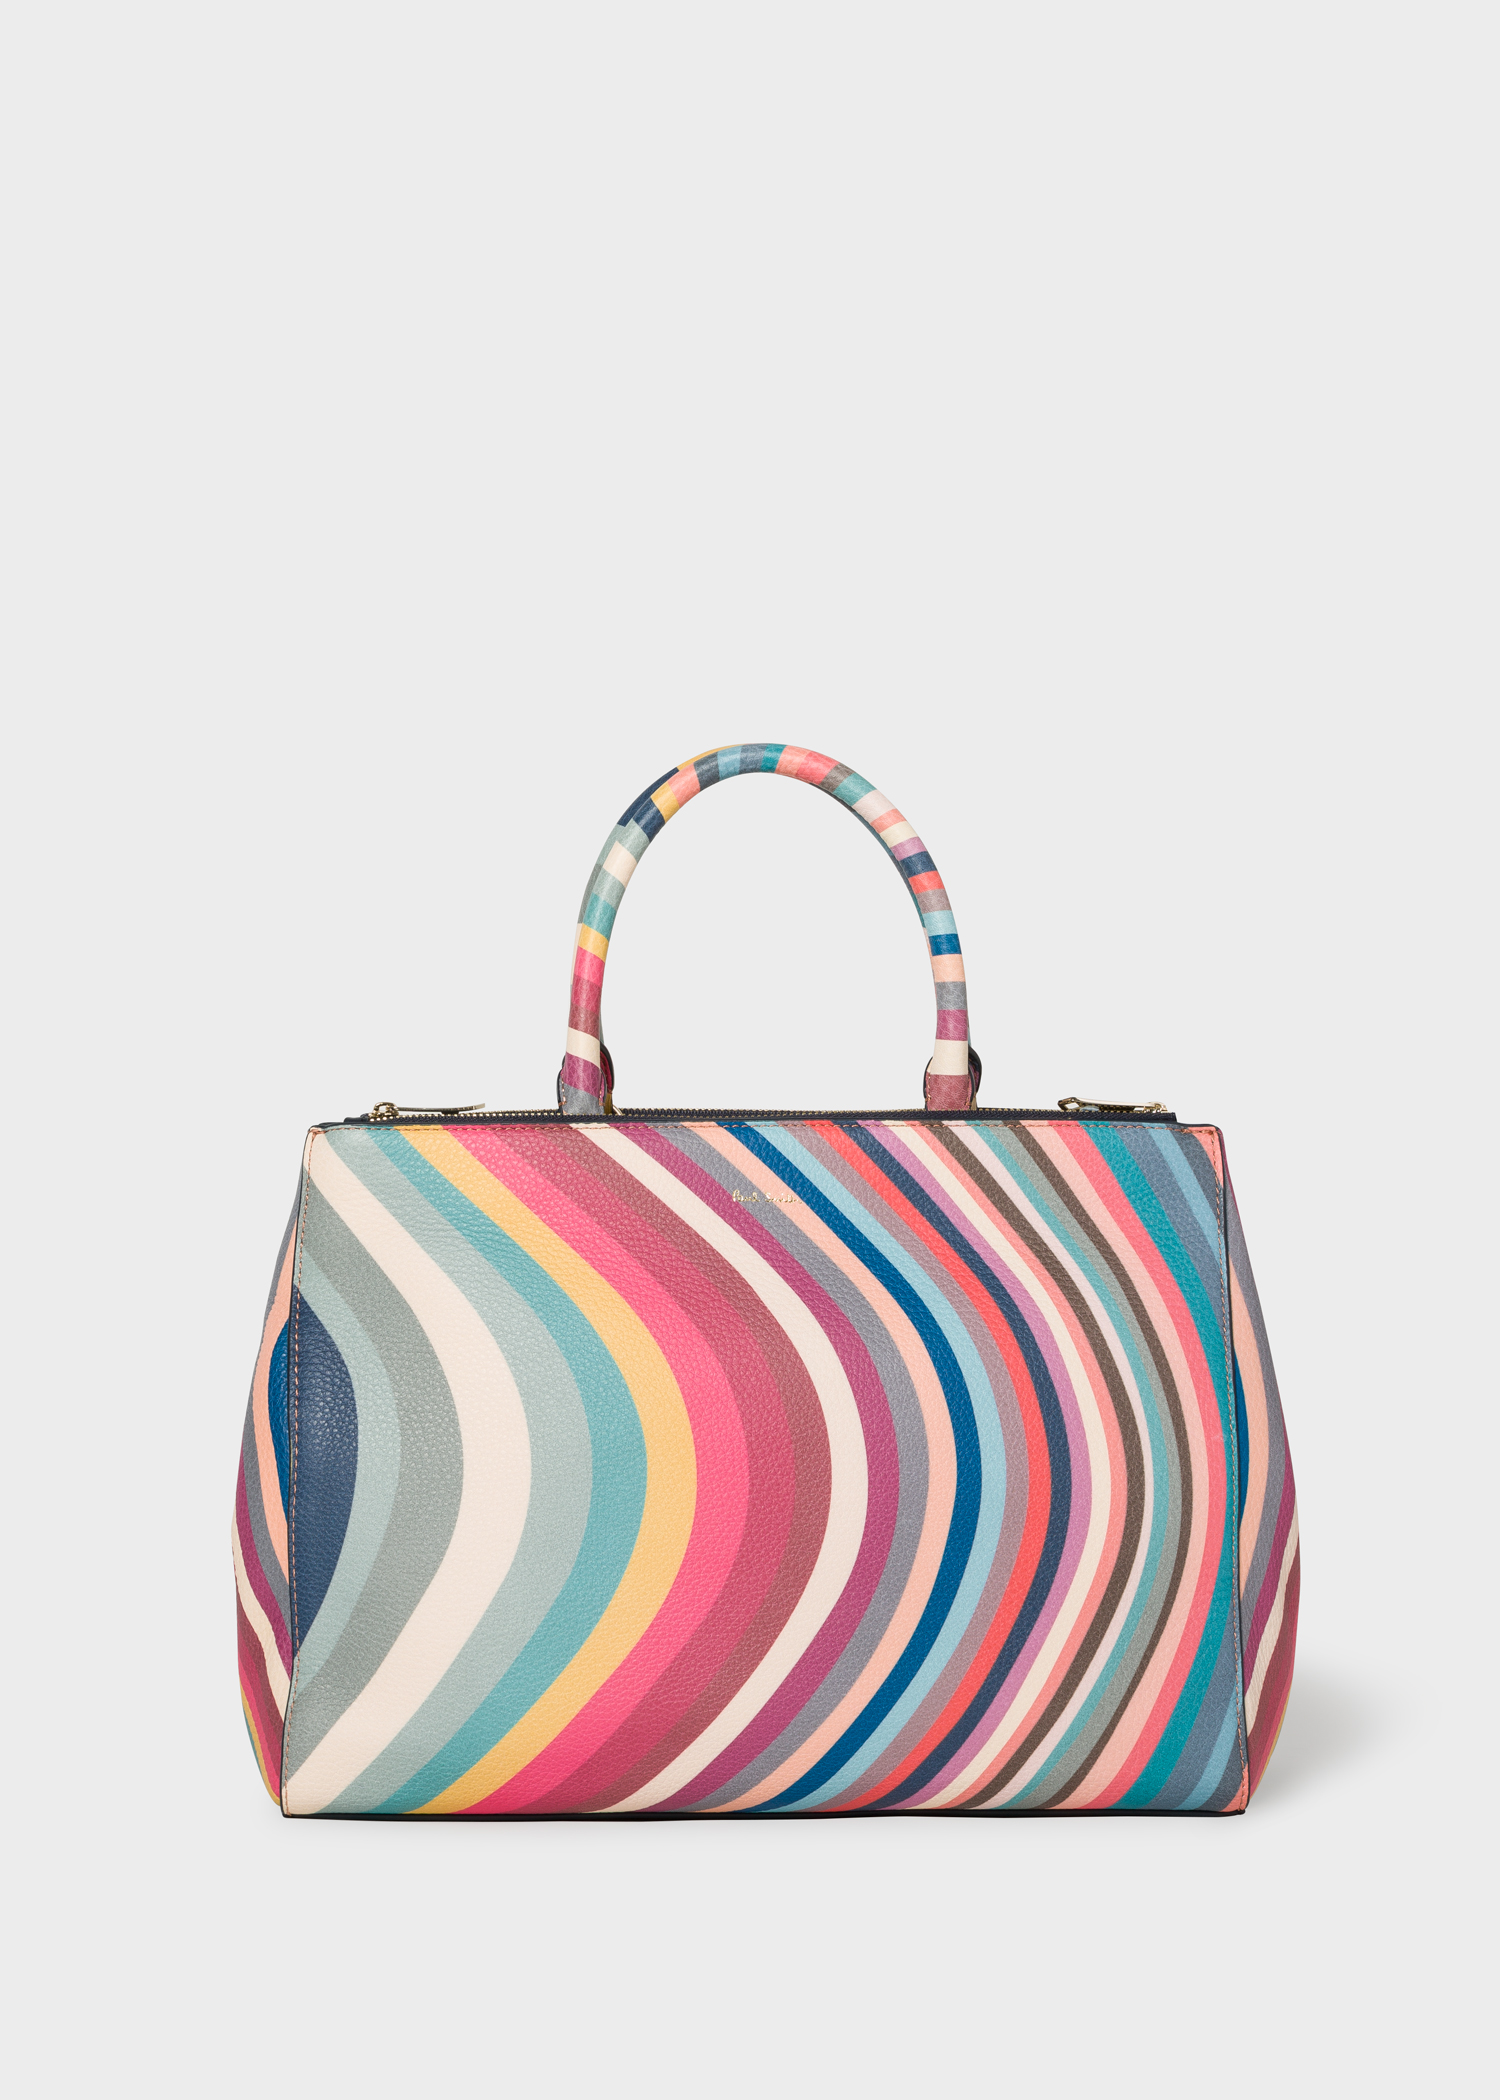 08a89dbef3 Women s  Spring Swirl  Print Leather Tote Bag - Paul Smith